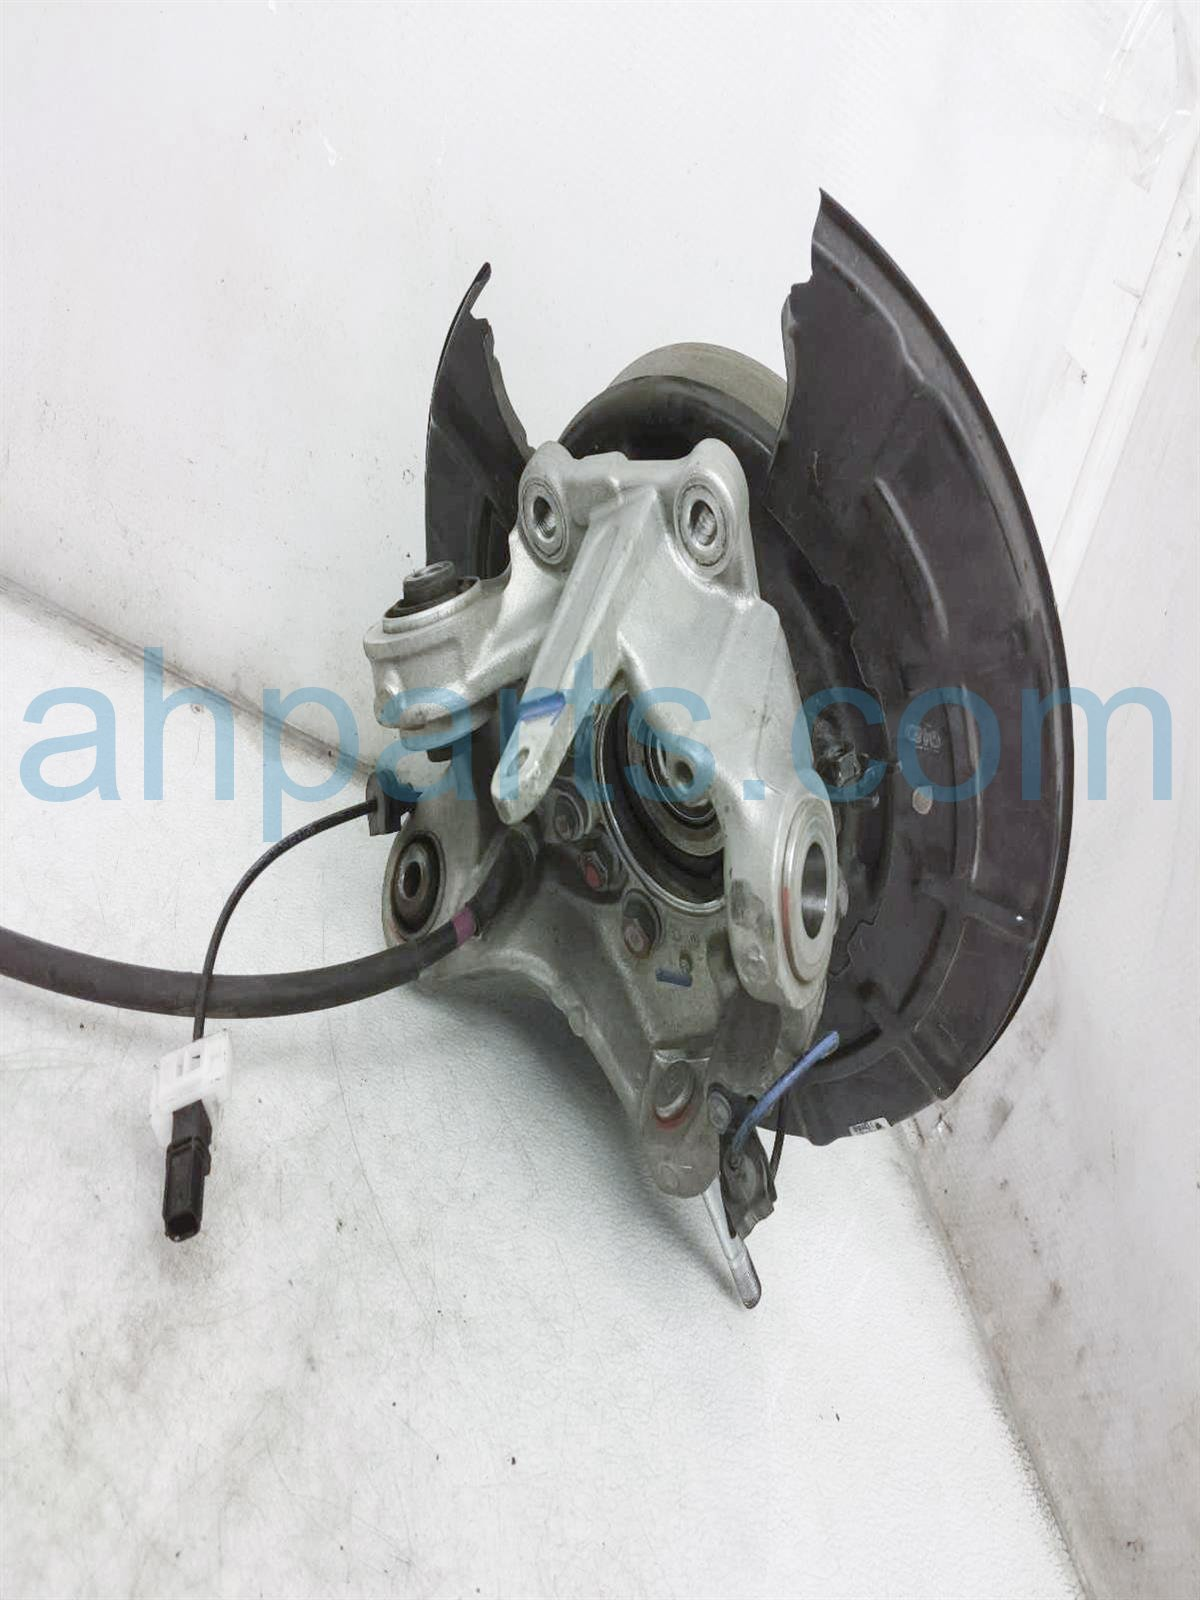 2019 Honda Passport Axle Stub Rear Driver Spindle Knuckle Hub 42200 TG7 A01 Replacement